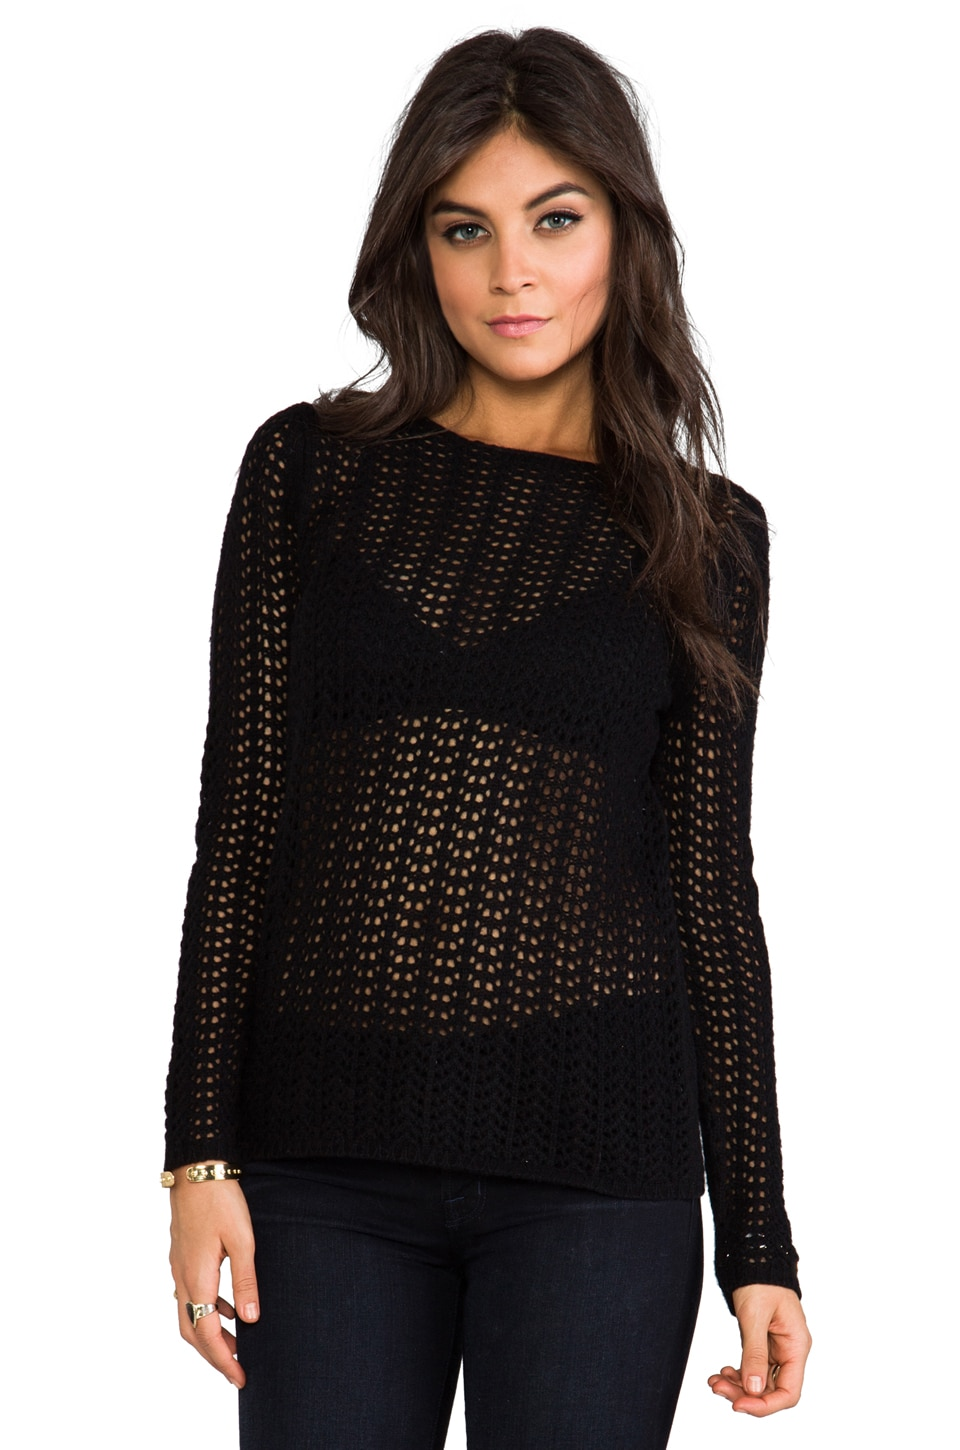 Graham & Spencer Lace Stitch Top in Black